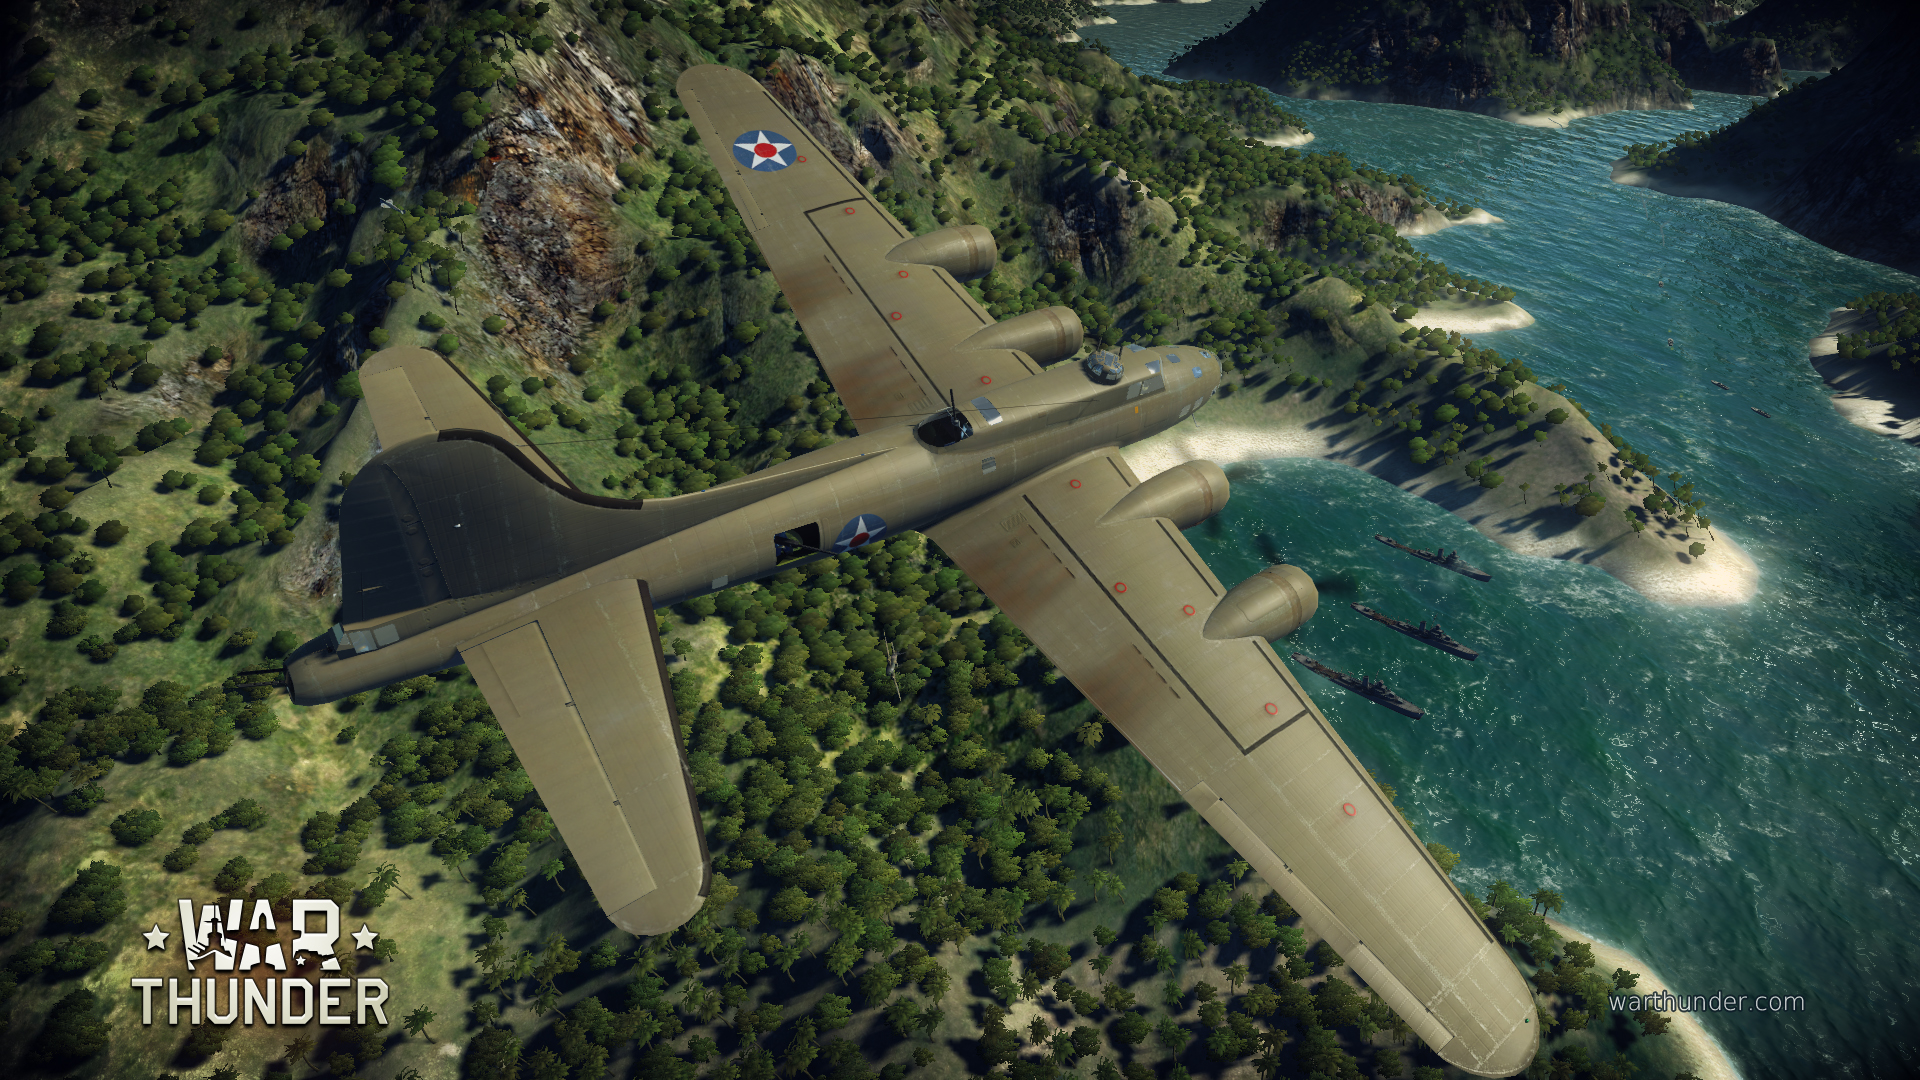 war_thunder_screen_6